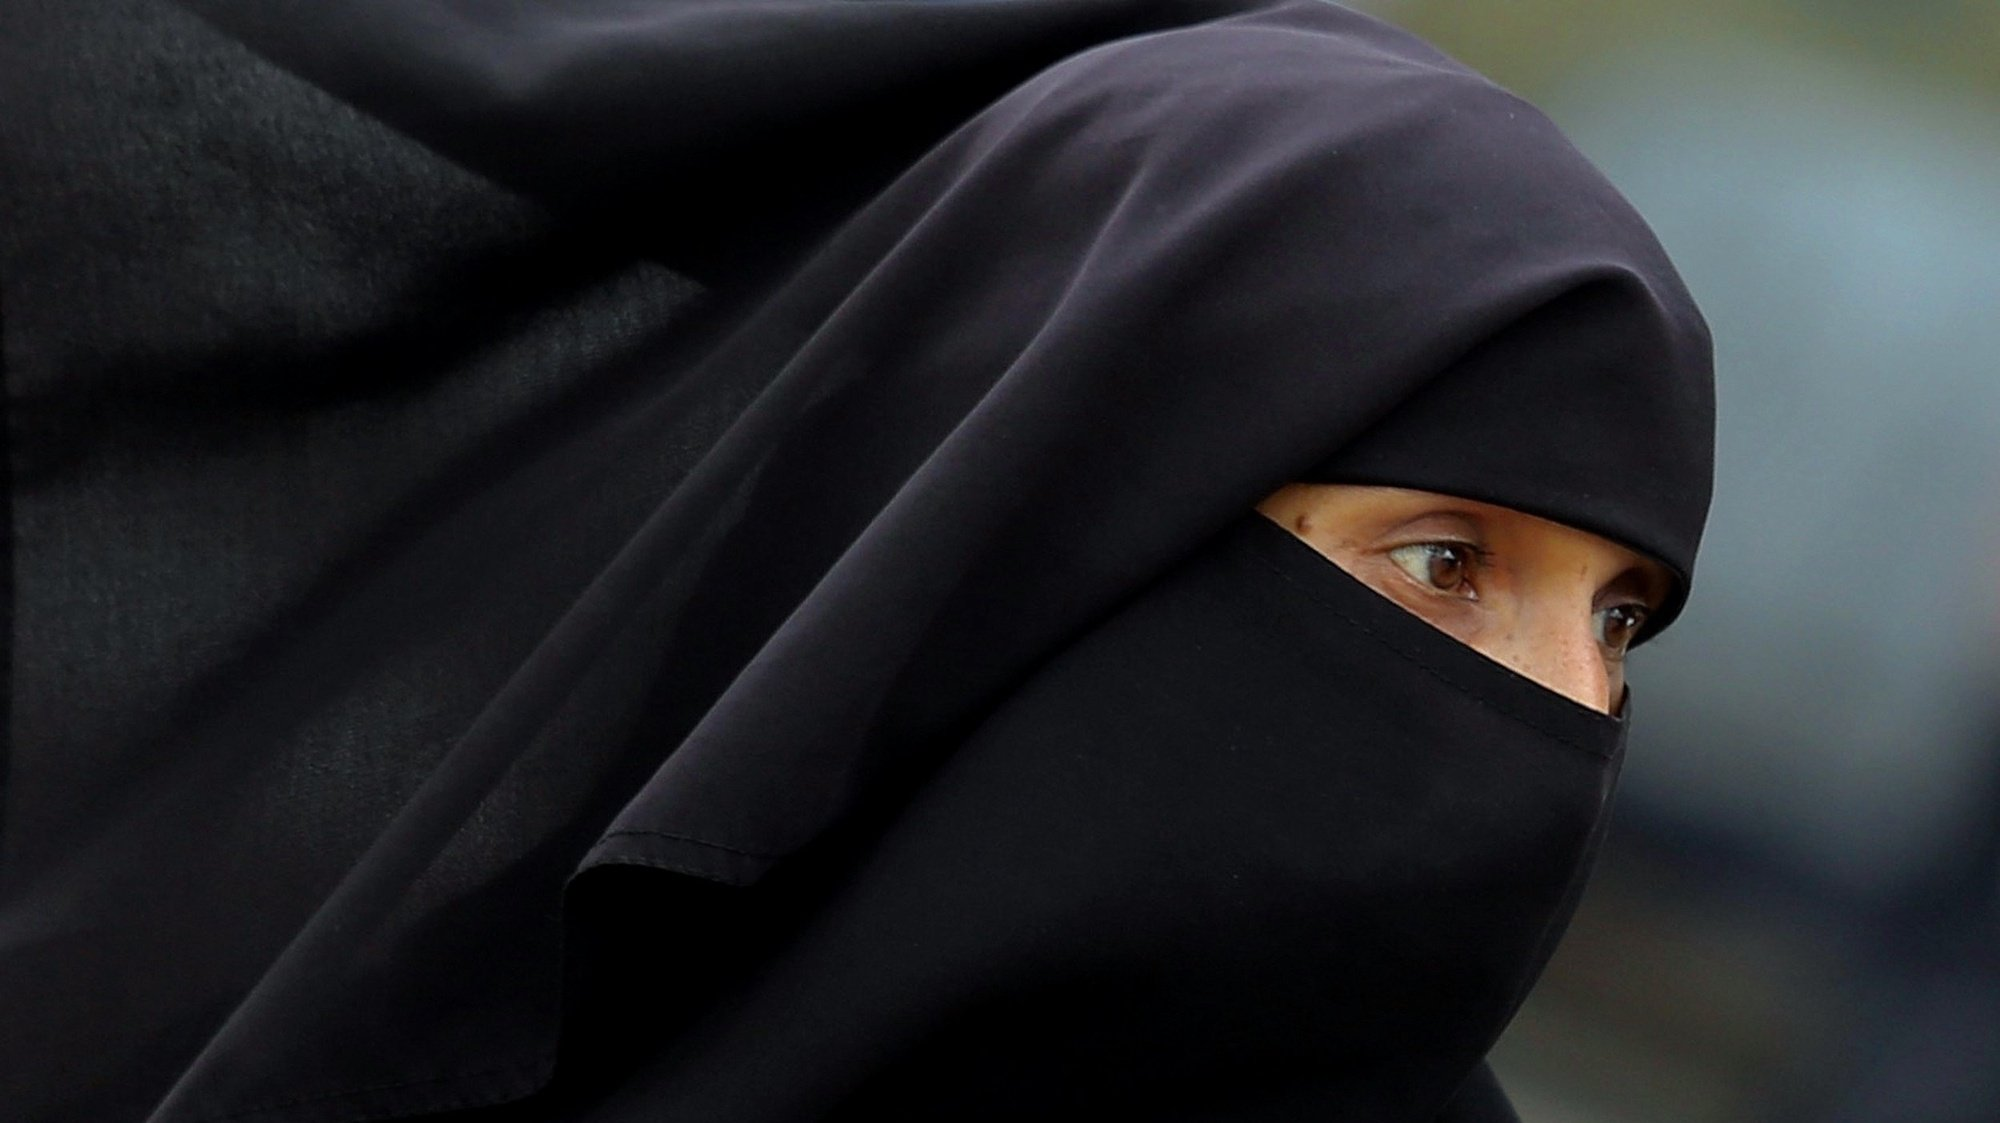 epa06157866 A close-up showing Indian Muslim woman wearing Burkha clad walks down, in Bangalore, India, 23 August 2017. India's Supreme Court on 22 August declared unconstitutional the Muslim practice of triple talaq where a husband can end a marriage unilaterally and instantly by repeating the word 'talaq', meaning 'I divorce', three times.  EPA/JAGADEESH NV